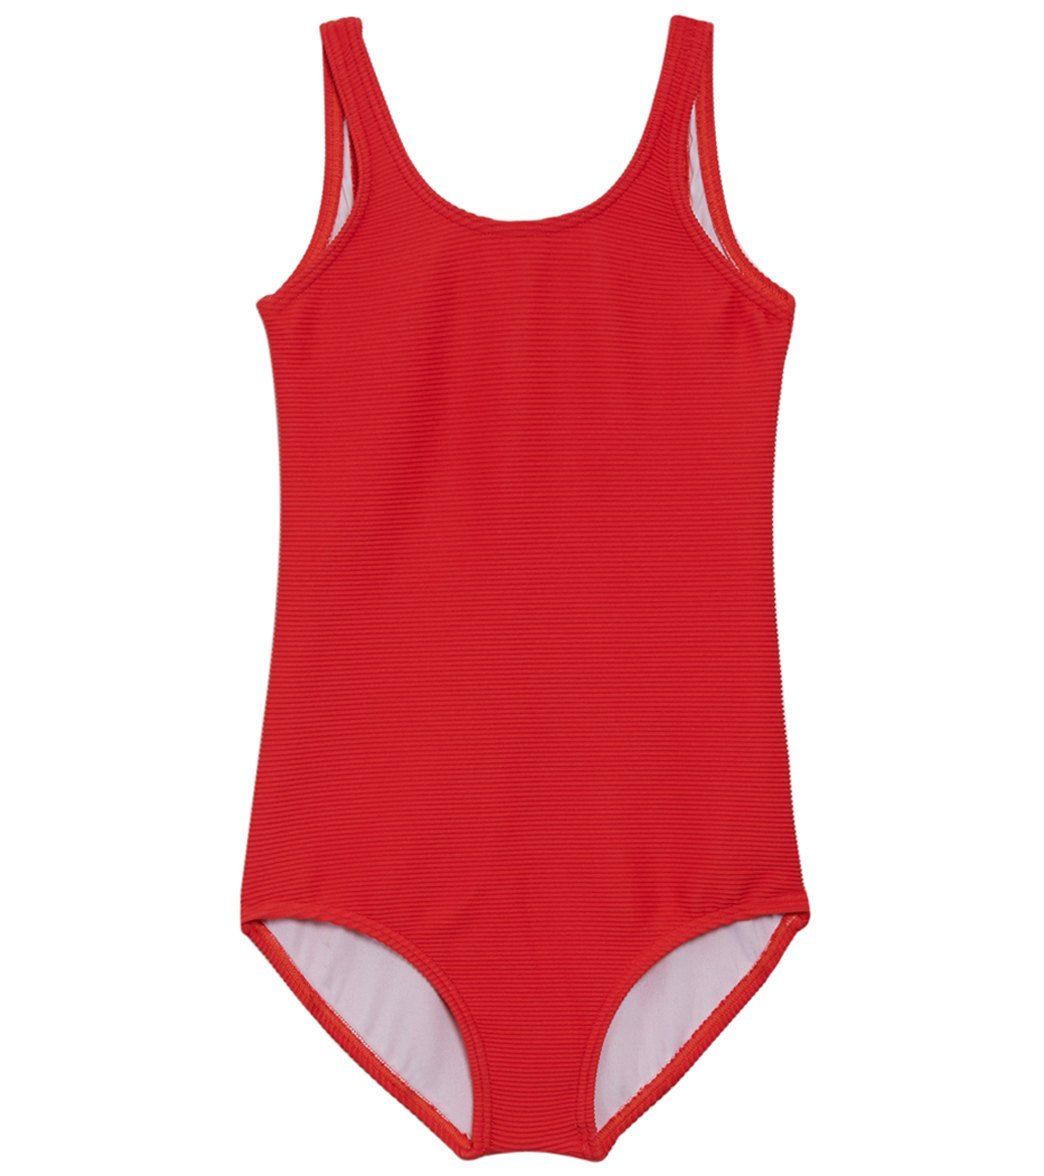 1dc7c6d3bd67 Billabong Girls' Line Up One Piece Swimsuit (Little Kid, Big Kid) at  SwimOutlet.com - Free Shipping